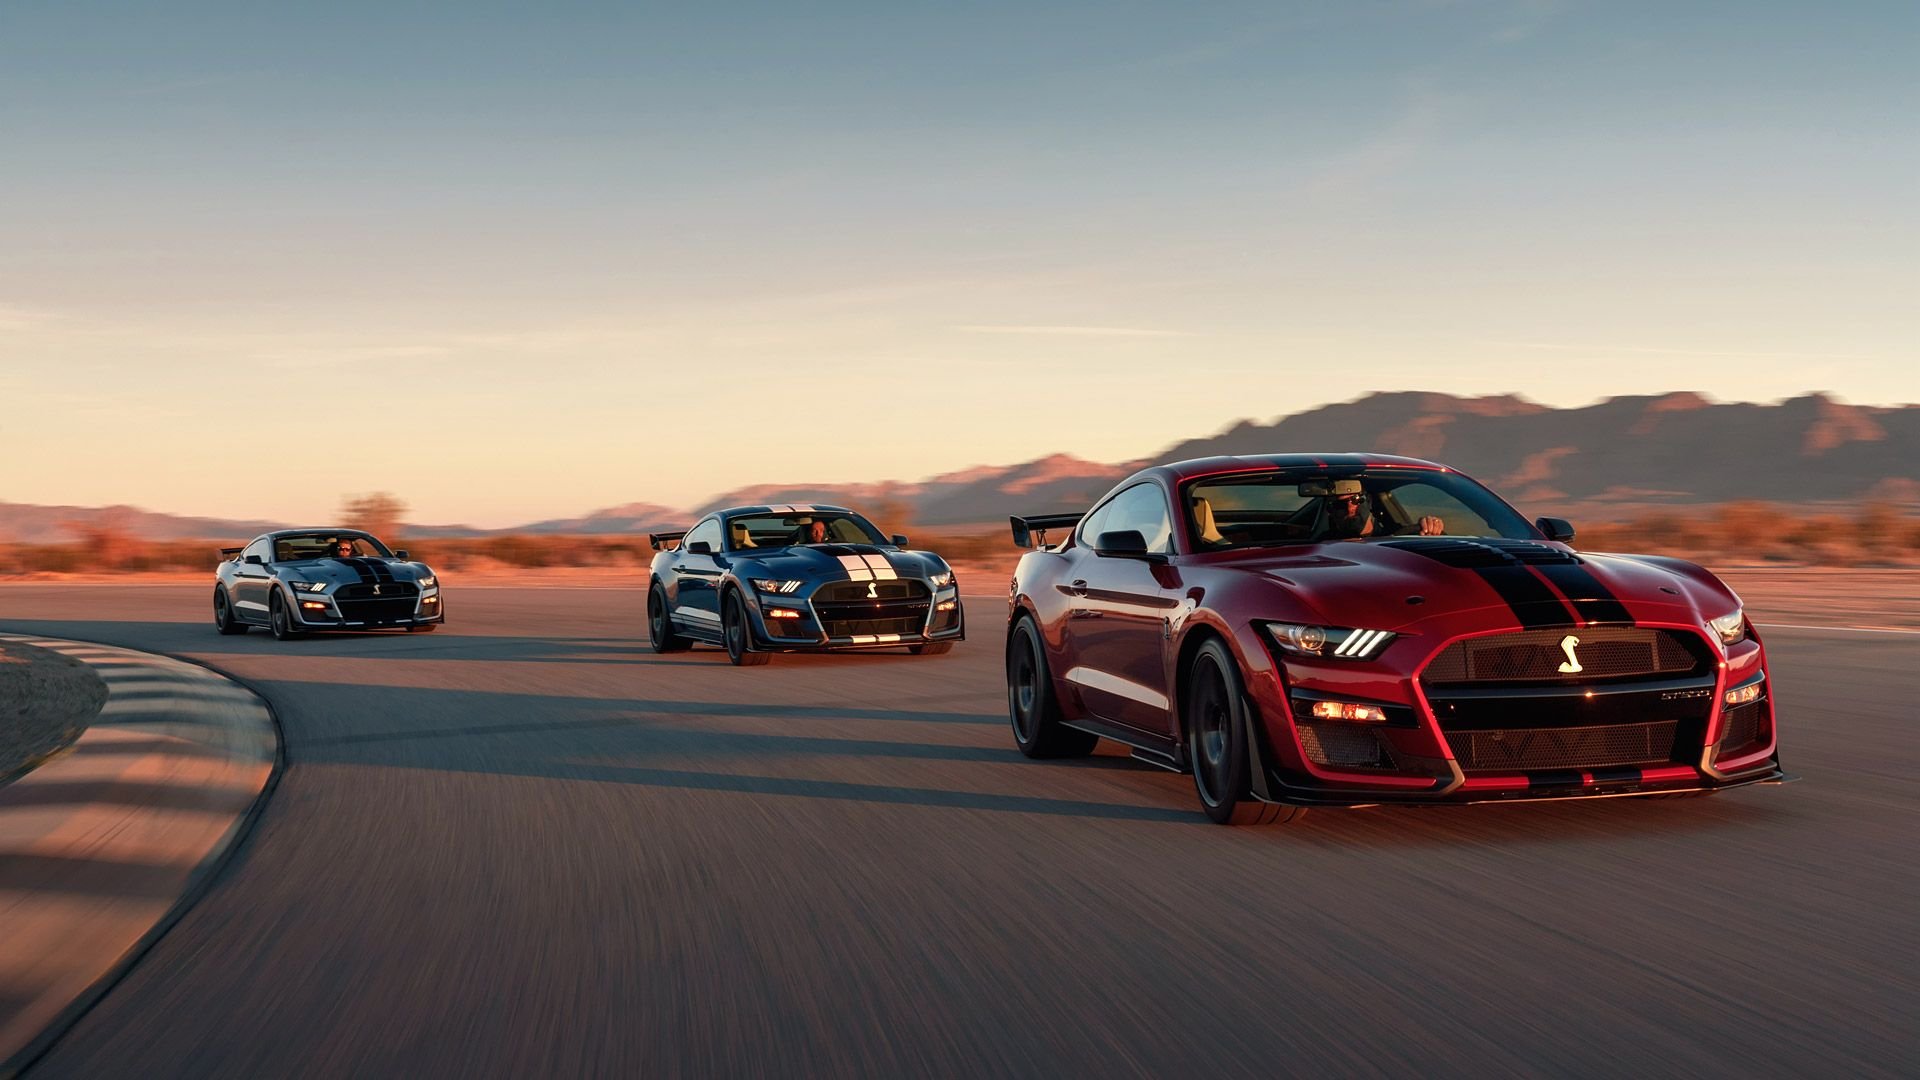 Shelby Mustang Wallpapers Top Free Shelby Mustang